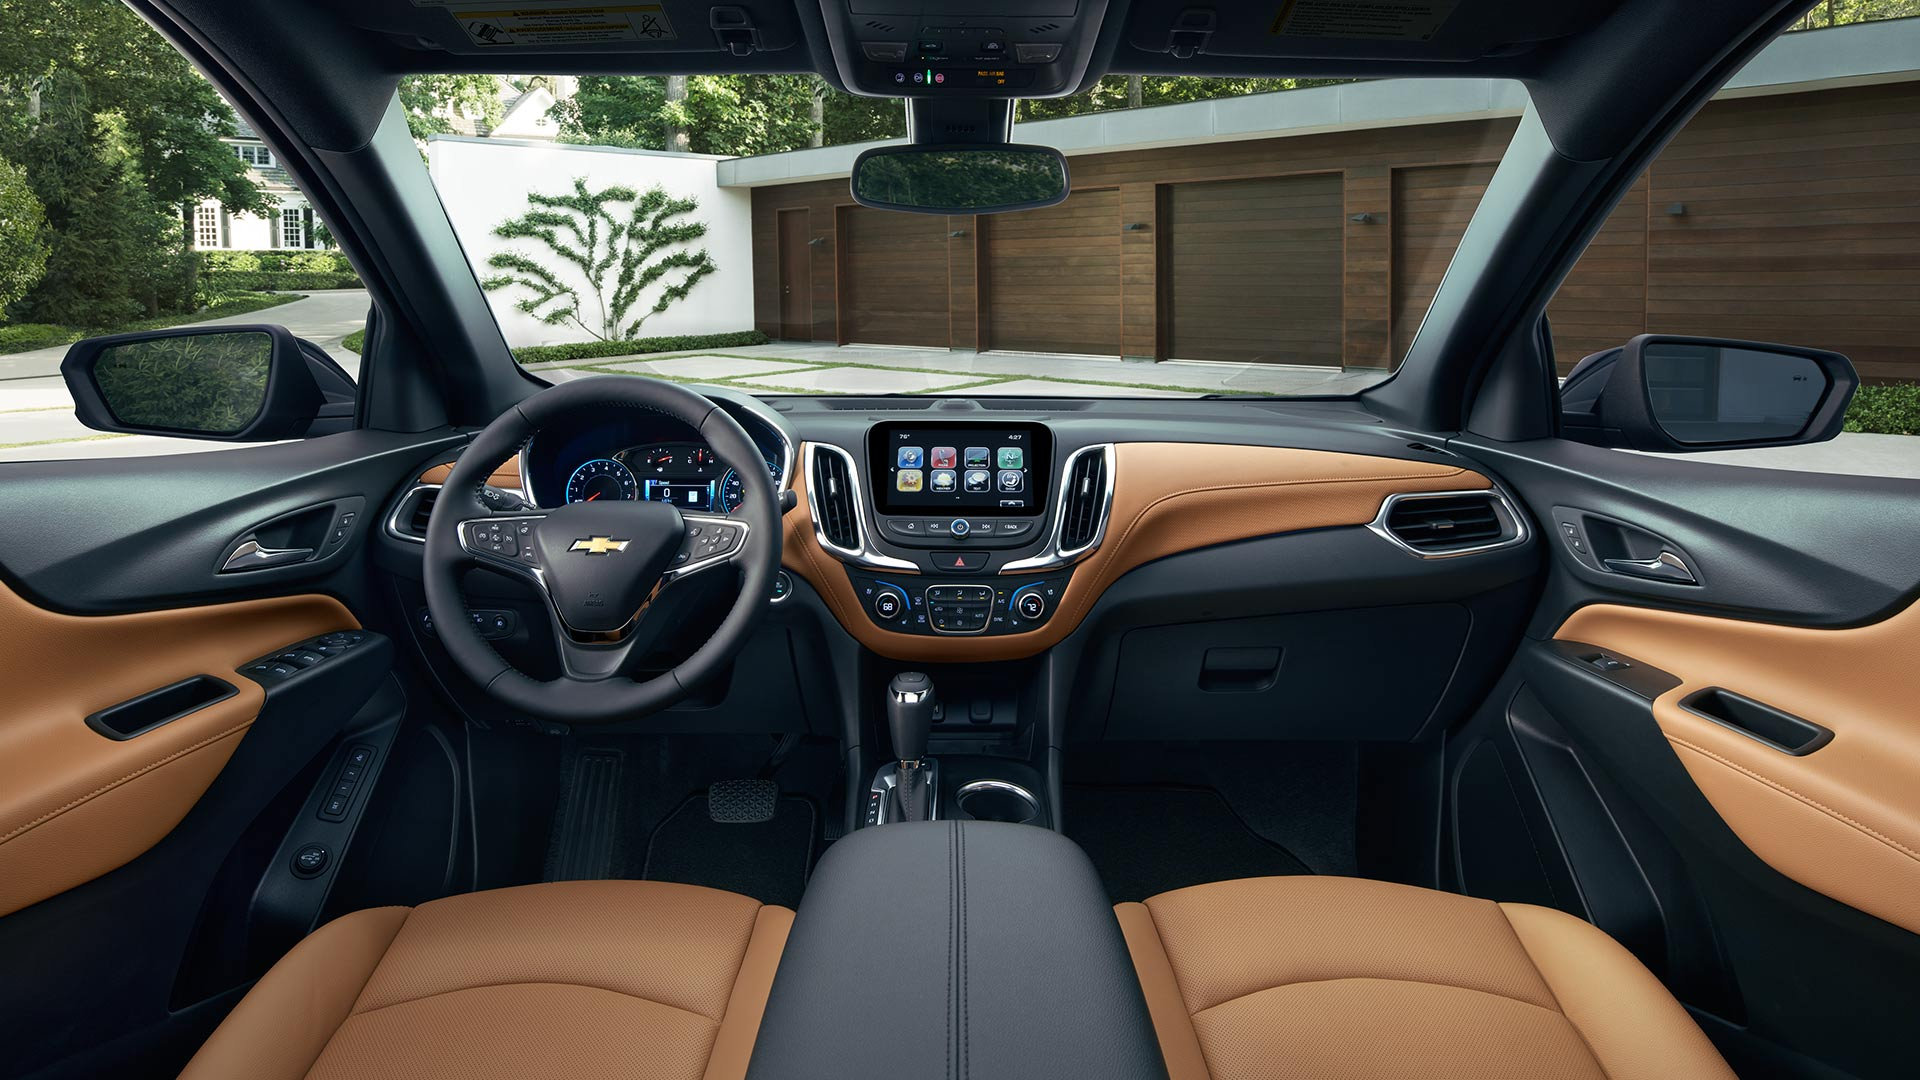 See the 2018 Chevy Equinox Interior Near Newton & Cambridge